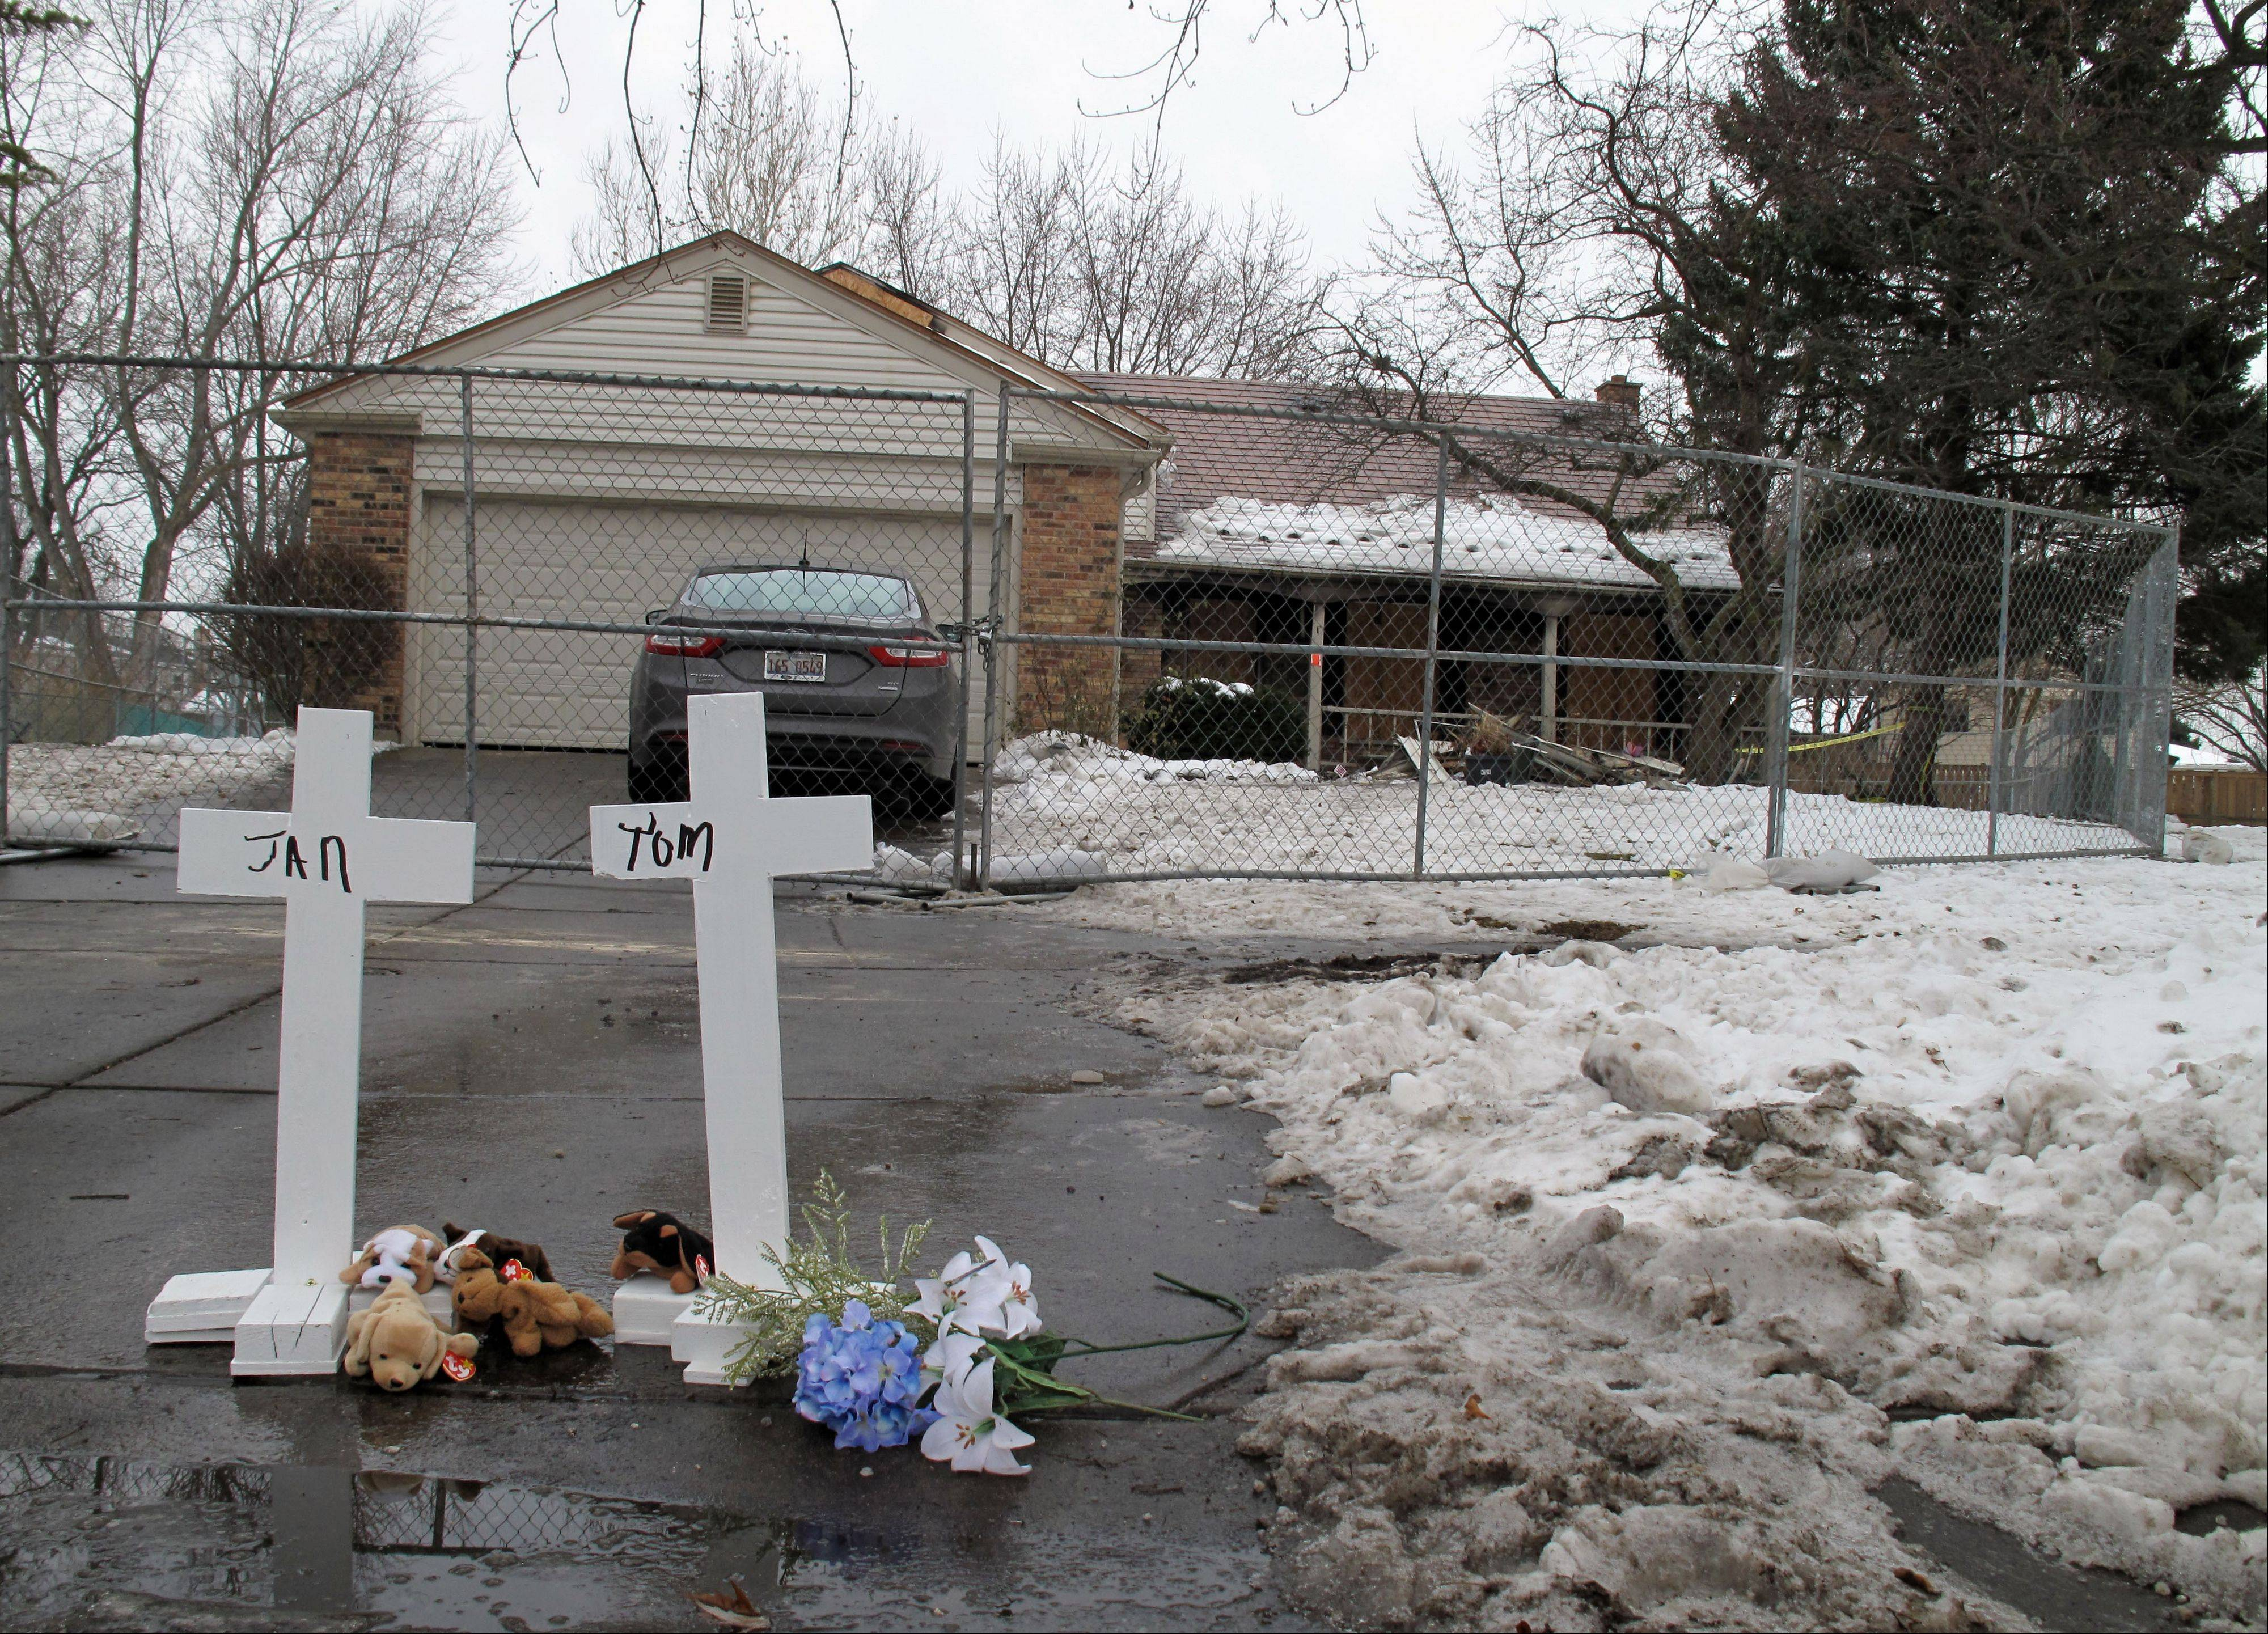 Crosses have been placed outside the Naperville home of Tom and Jan Lambert, where a fire Wednesday morning killed the couple and injured Tom's sister, father and a 21-year-old caregiver. The cause of the fire is still under investigation.